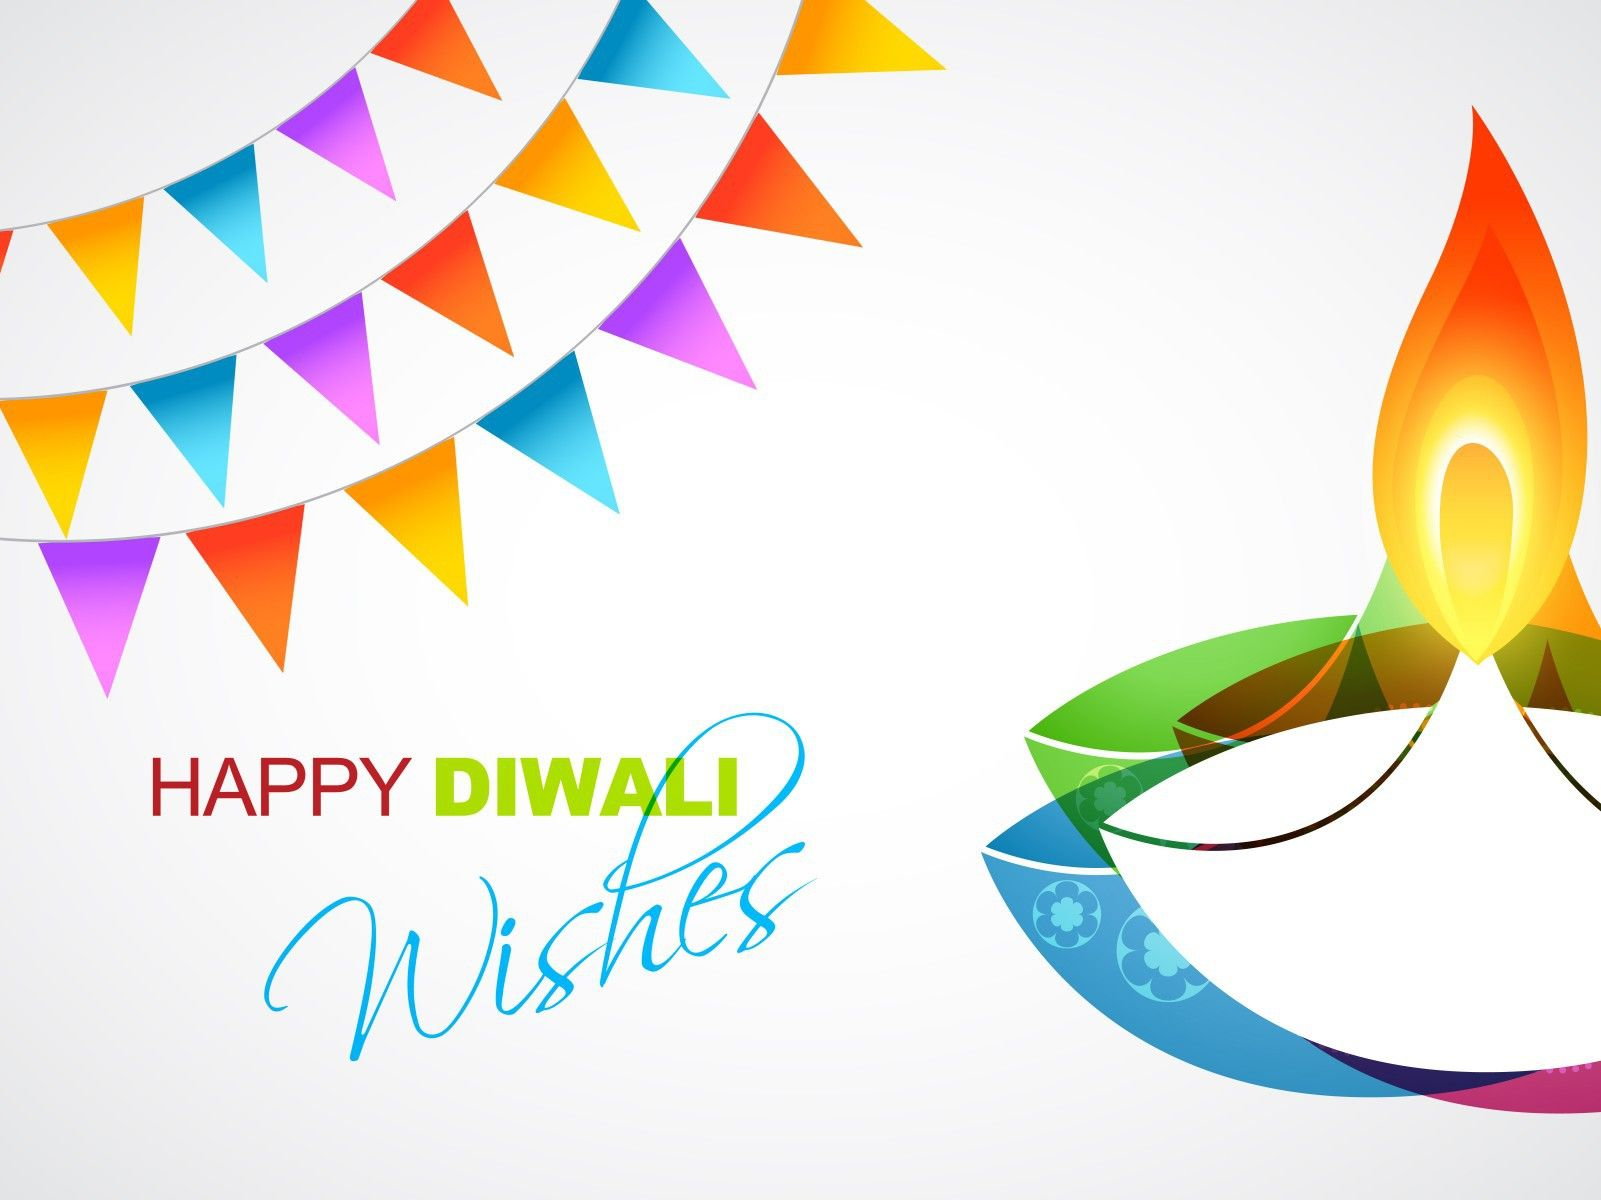 happy diwali wishes diya hd wallpapers | happy diwali hd wallpapers